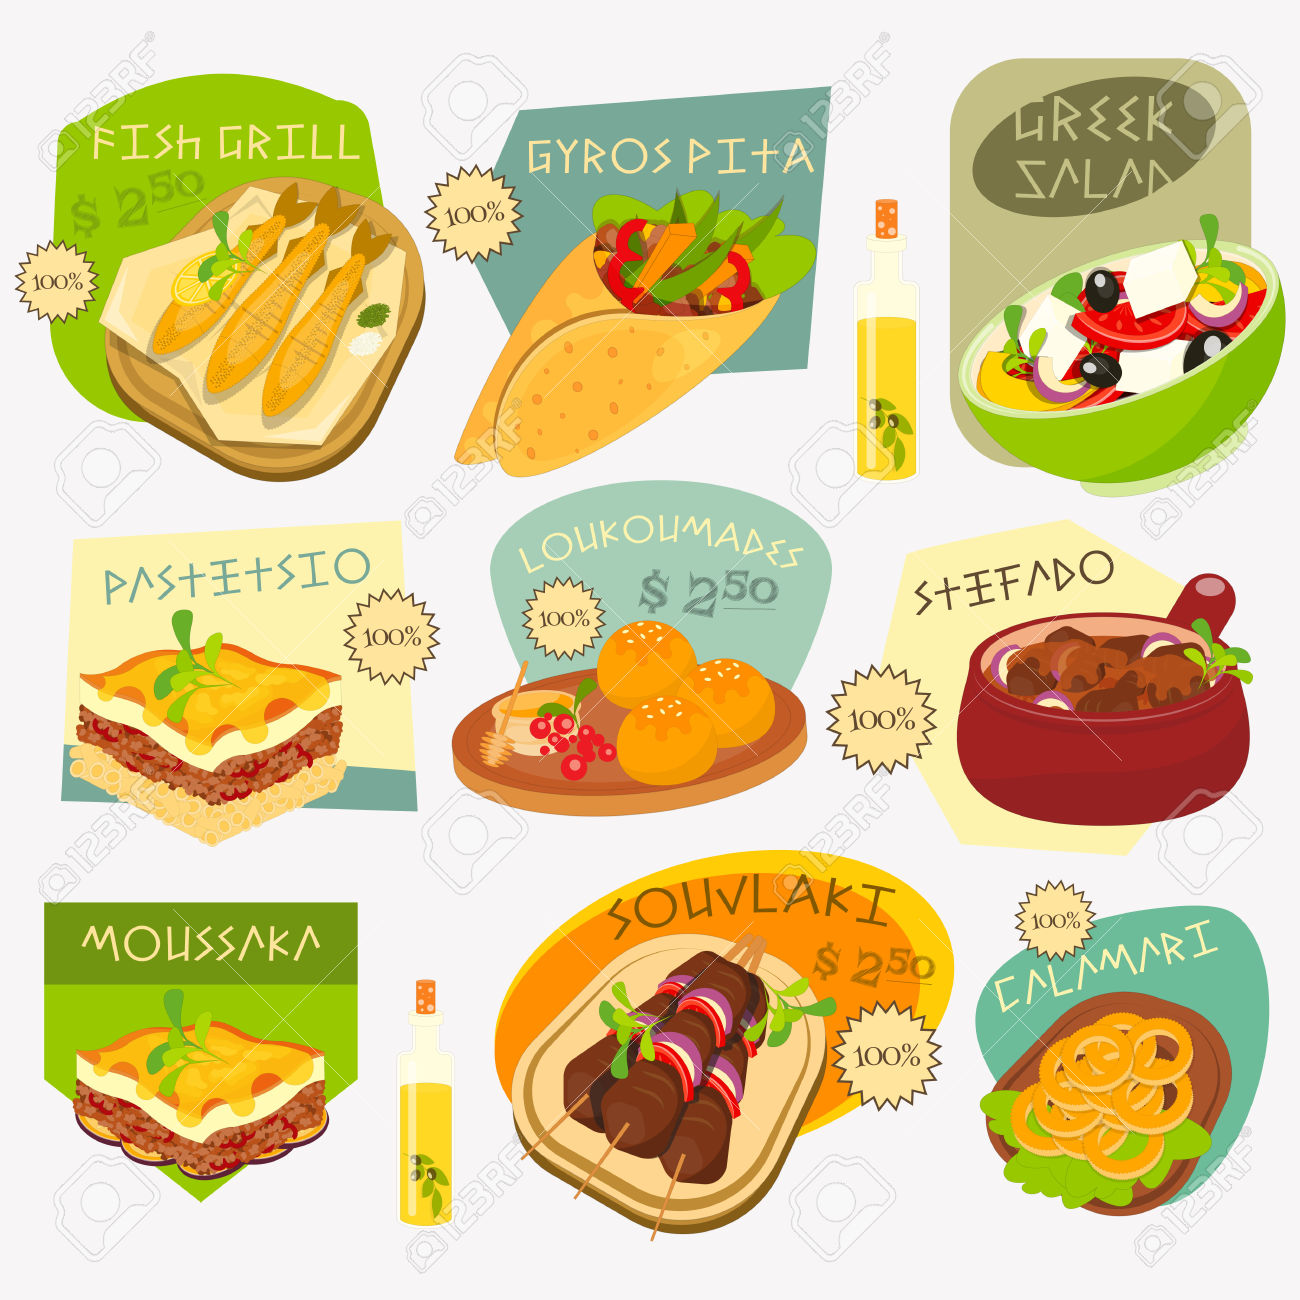 Traditional Food Clipart.